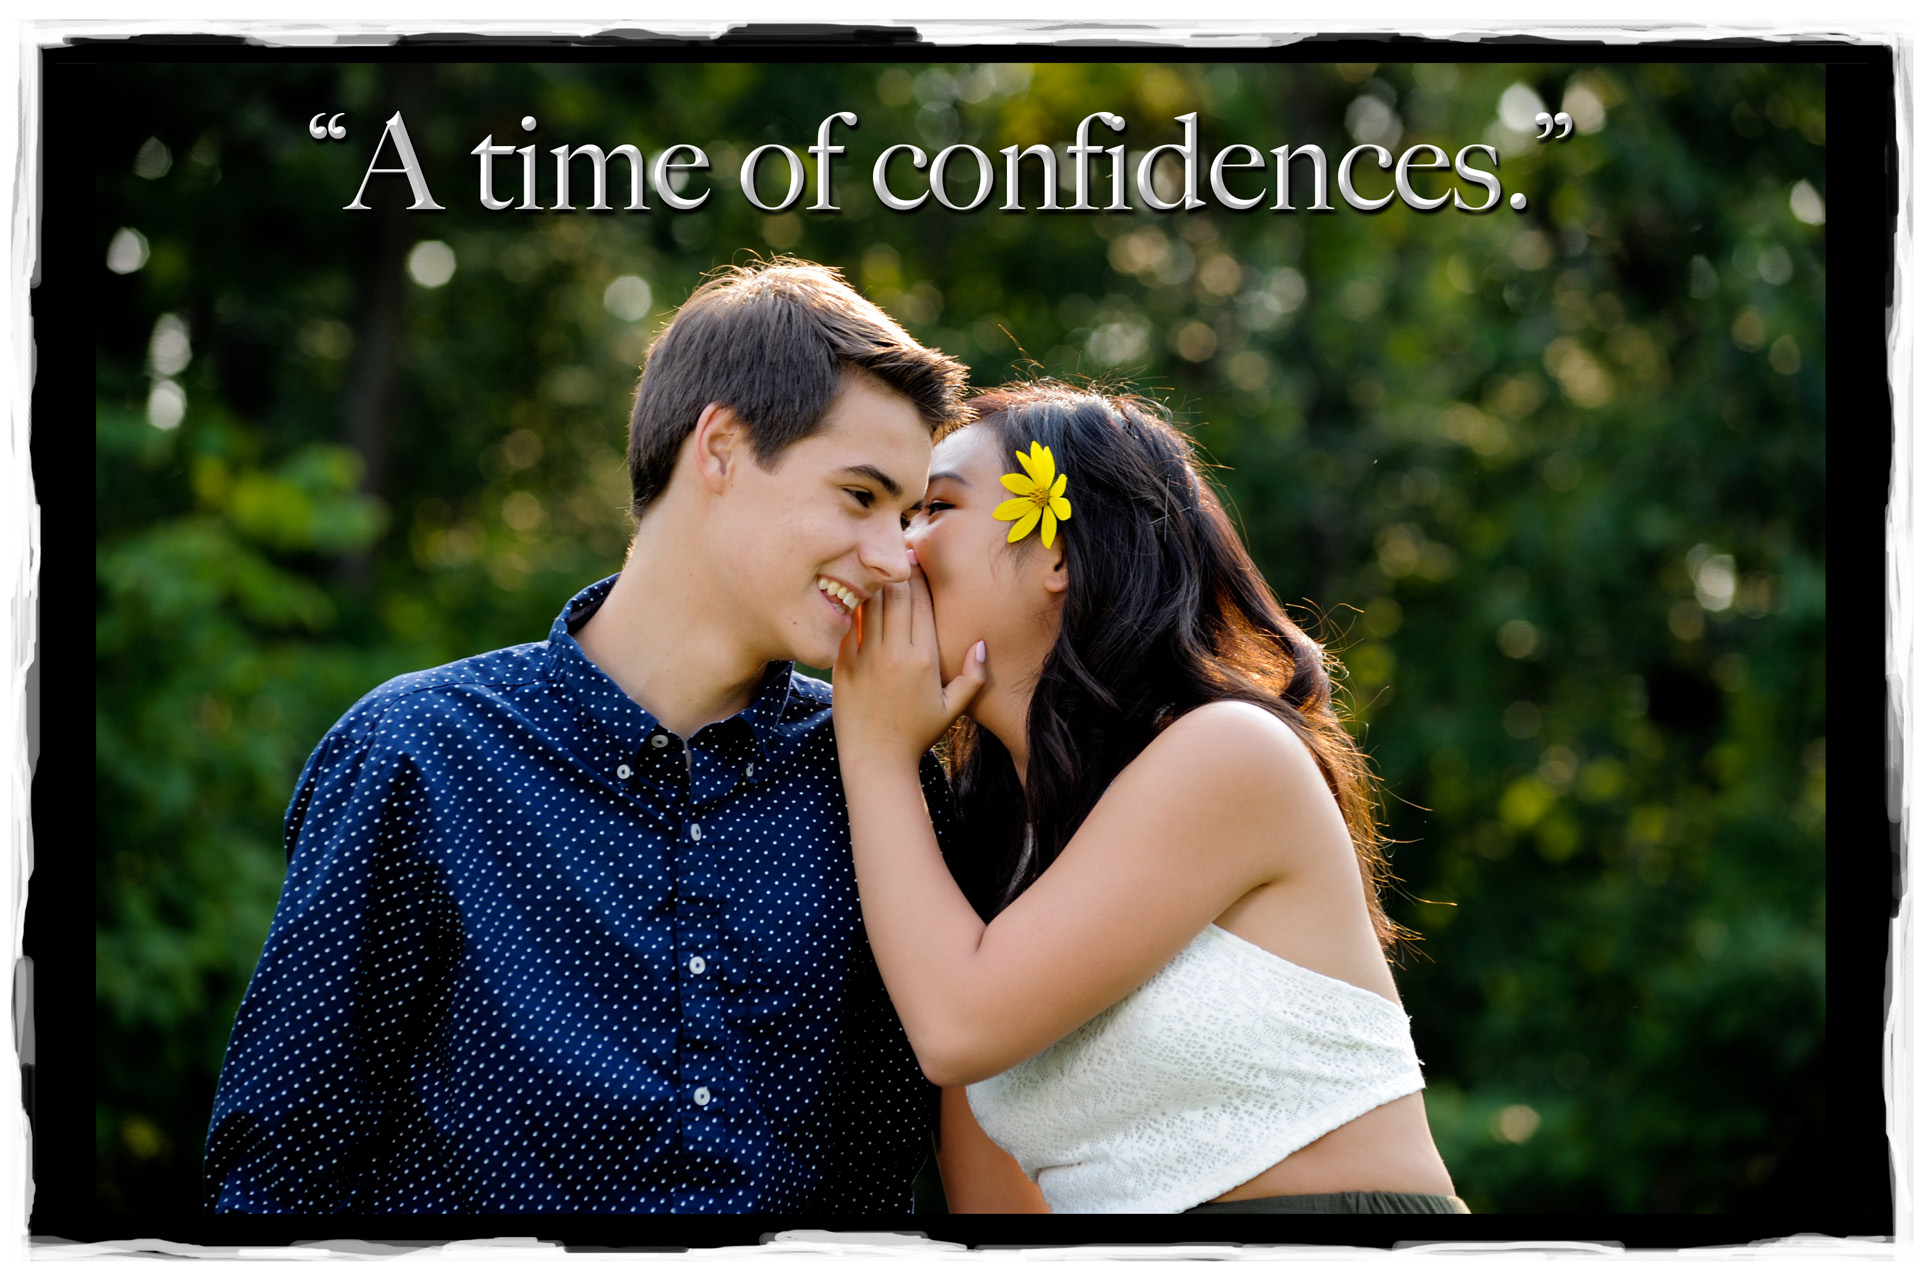 A Detroit area high school couple whisper during their senior romeo and juliet photo in Rochester, Michigan.